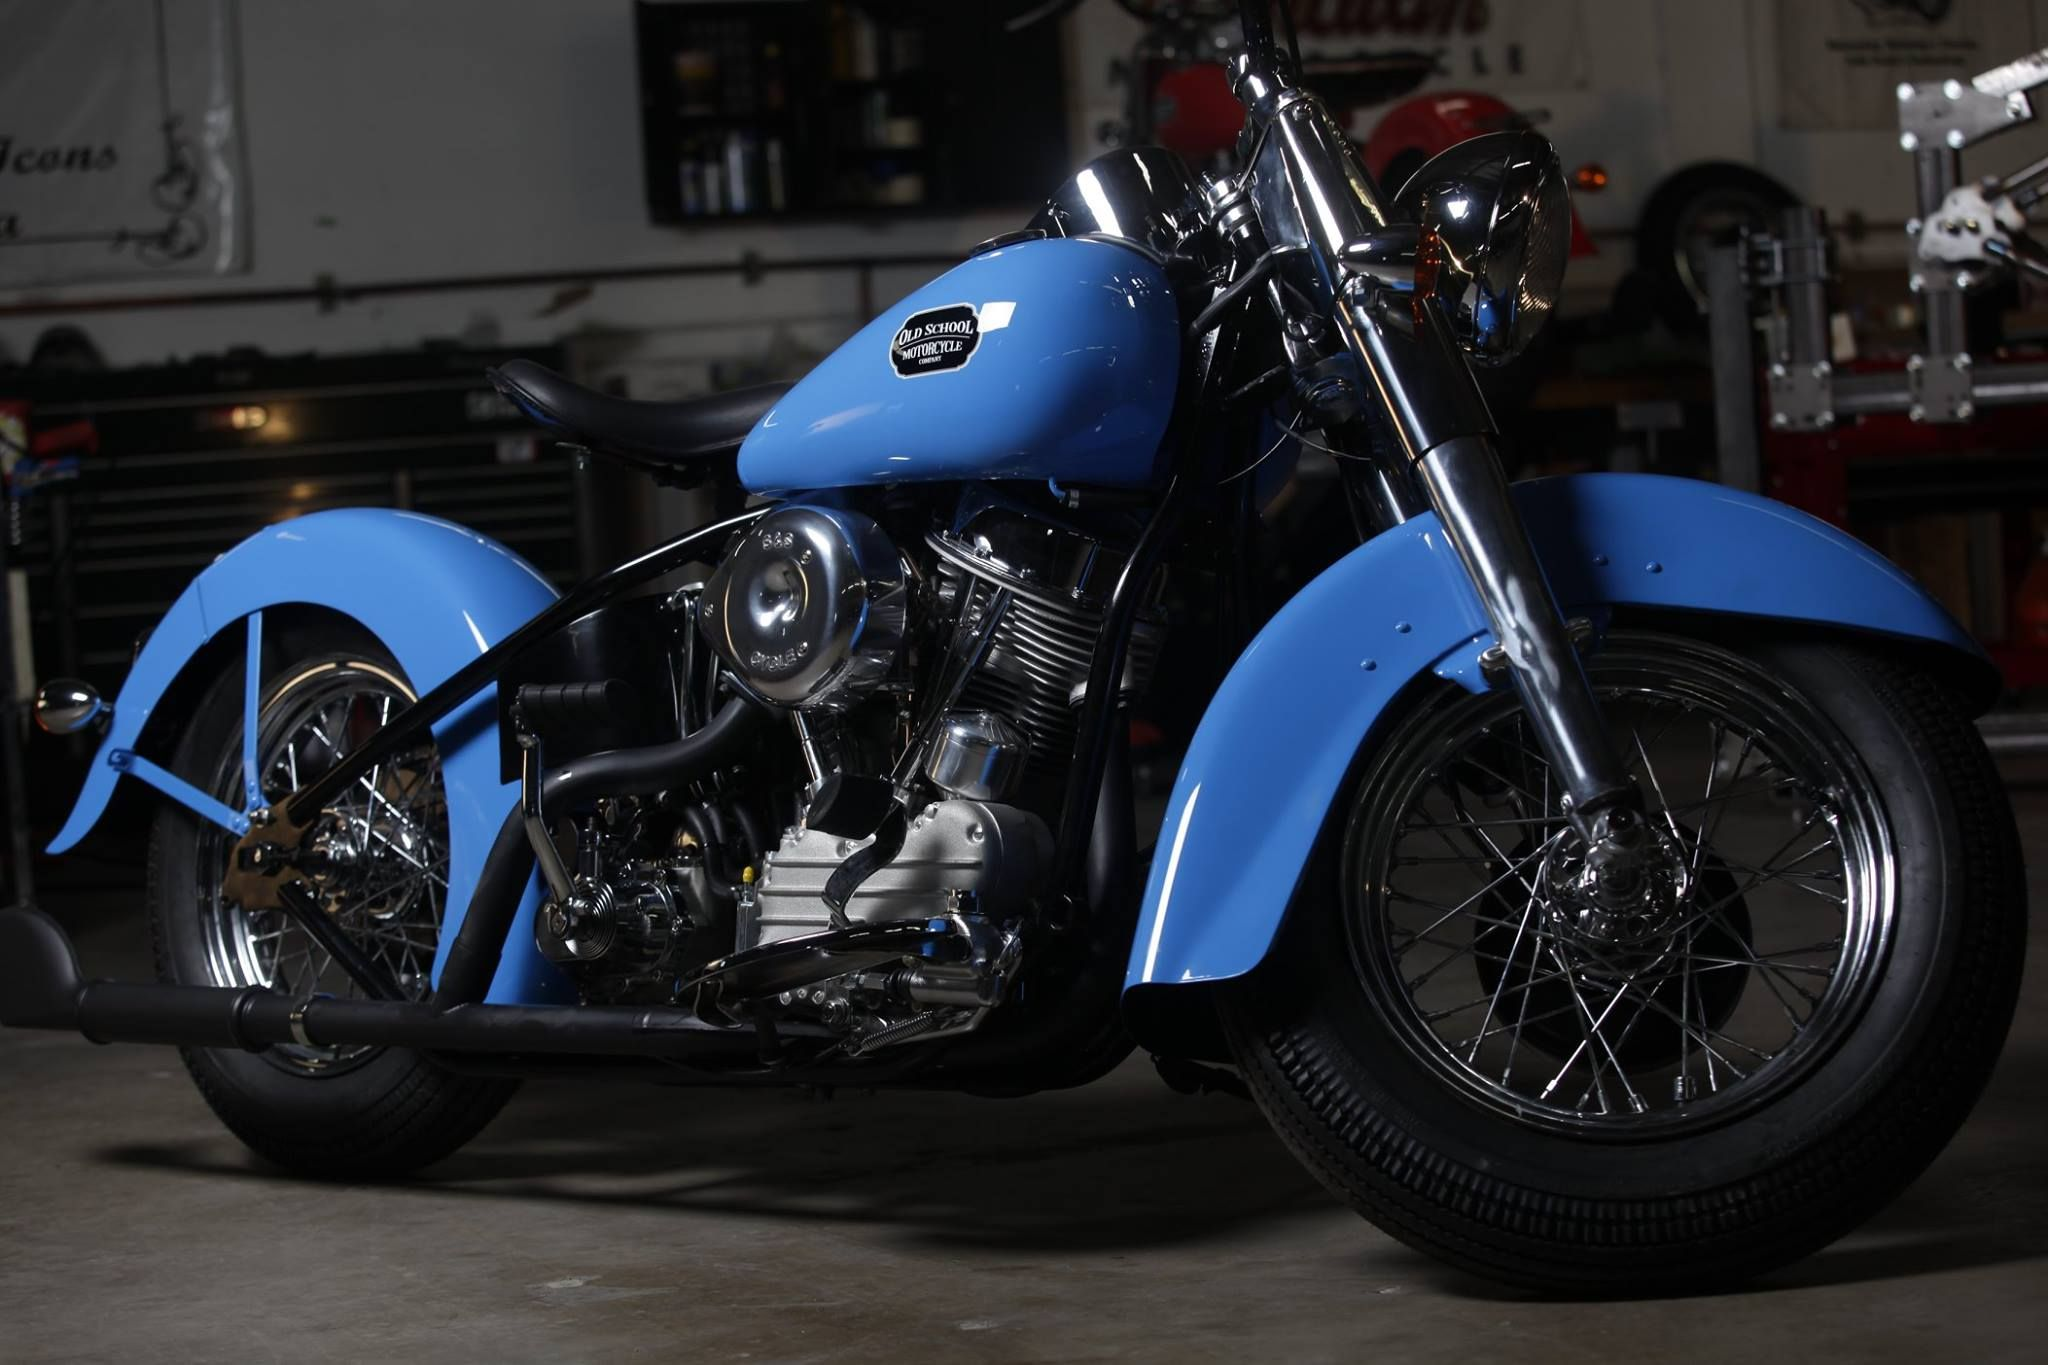 Time Bandit Classic Specification Old School Motorcycles